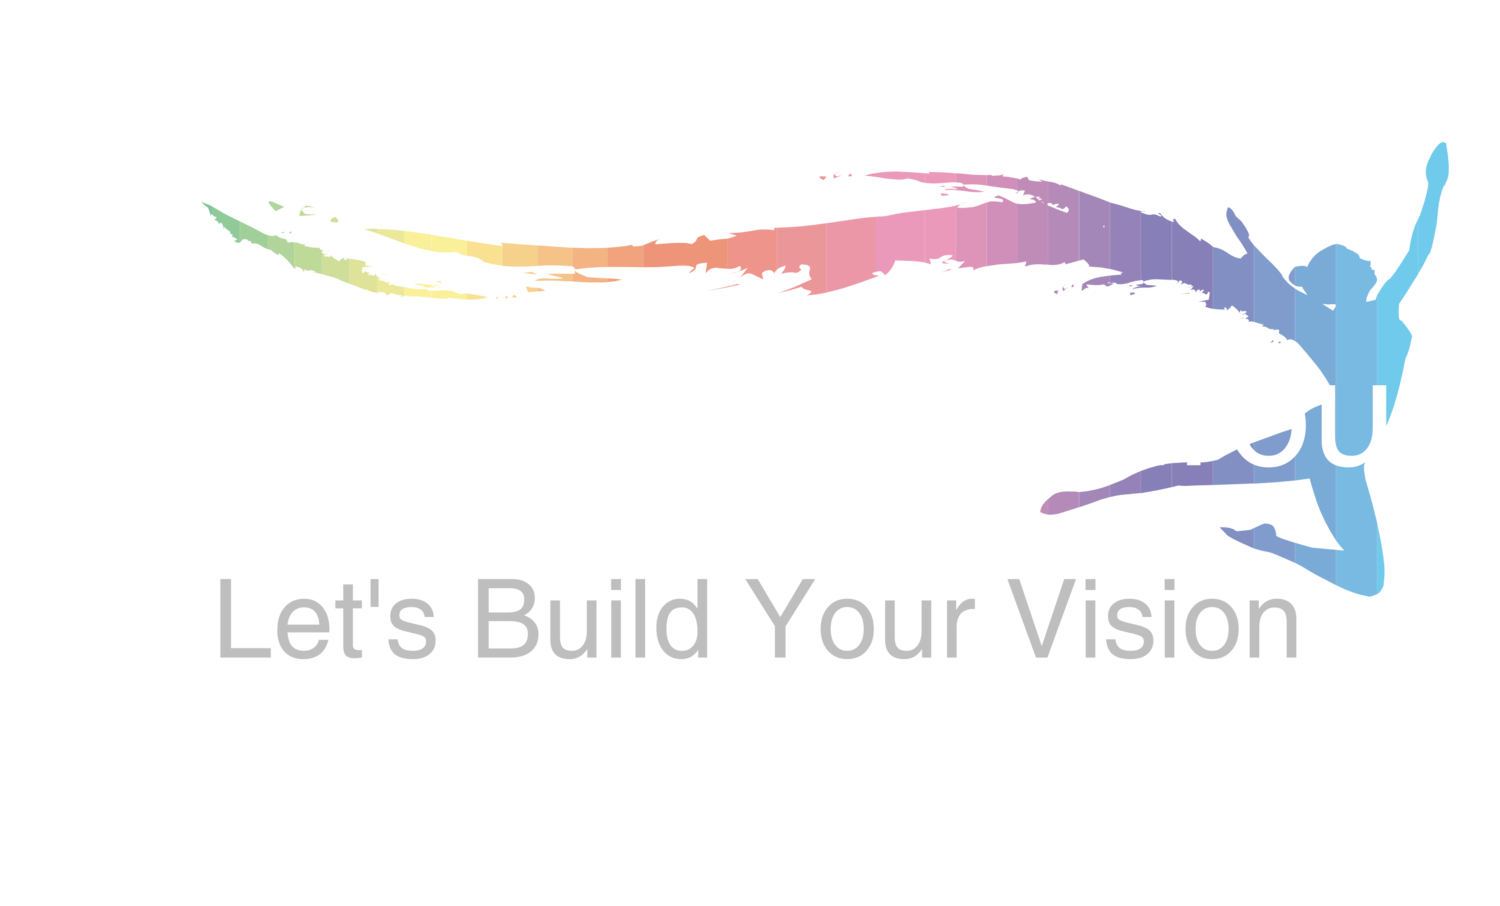 Agile Software Group